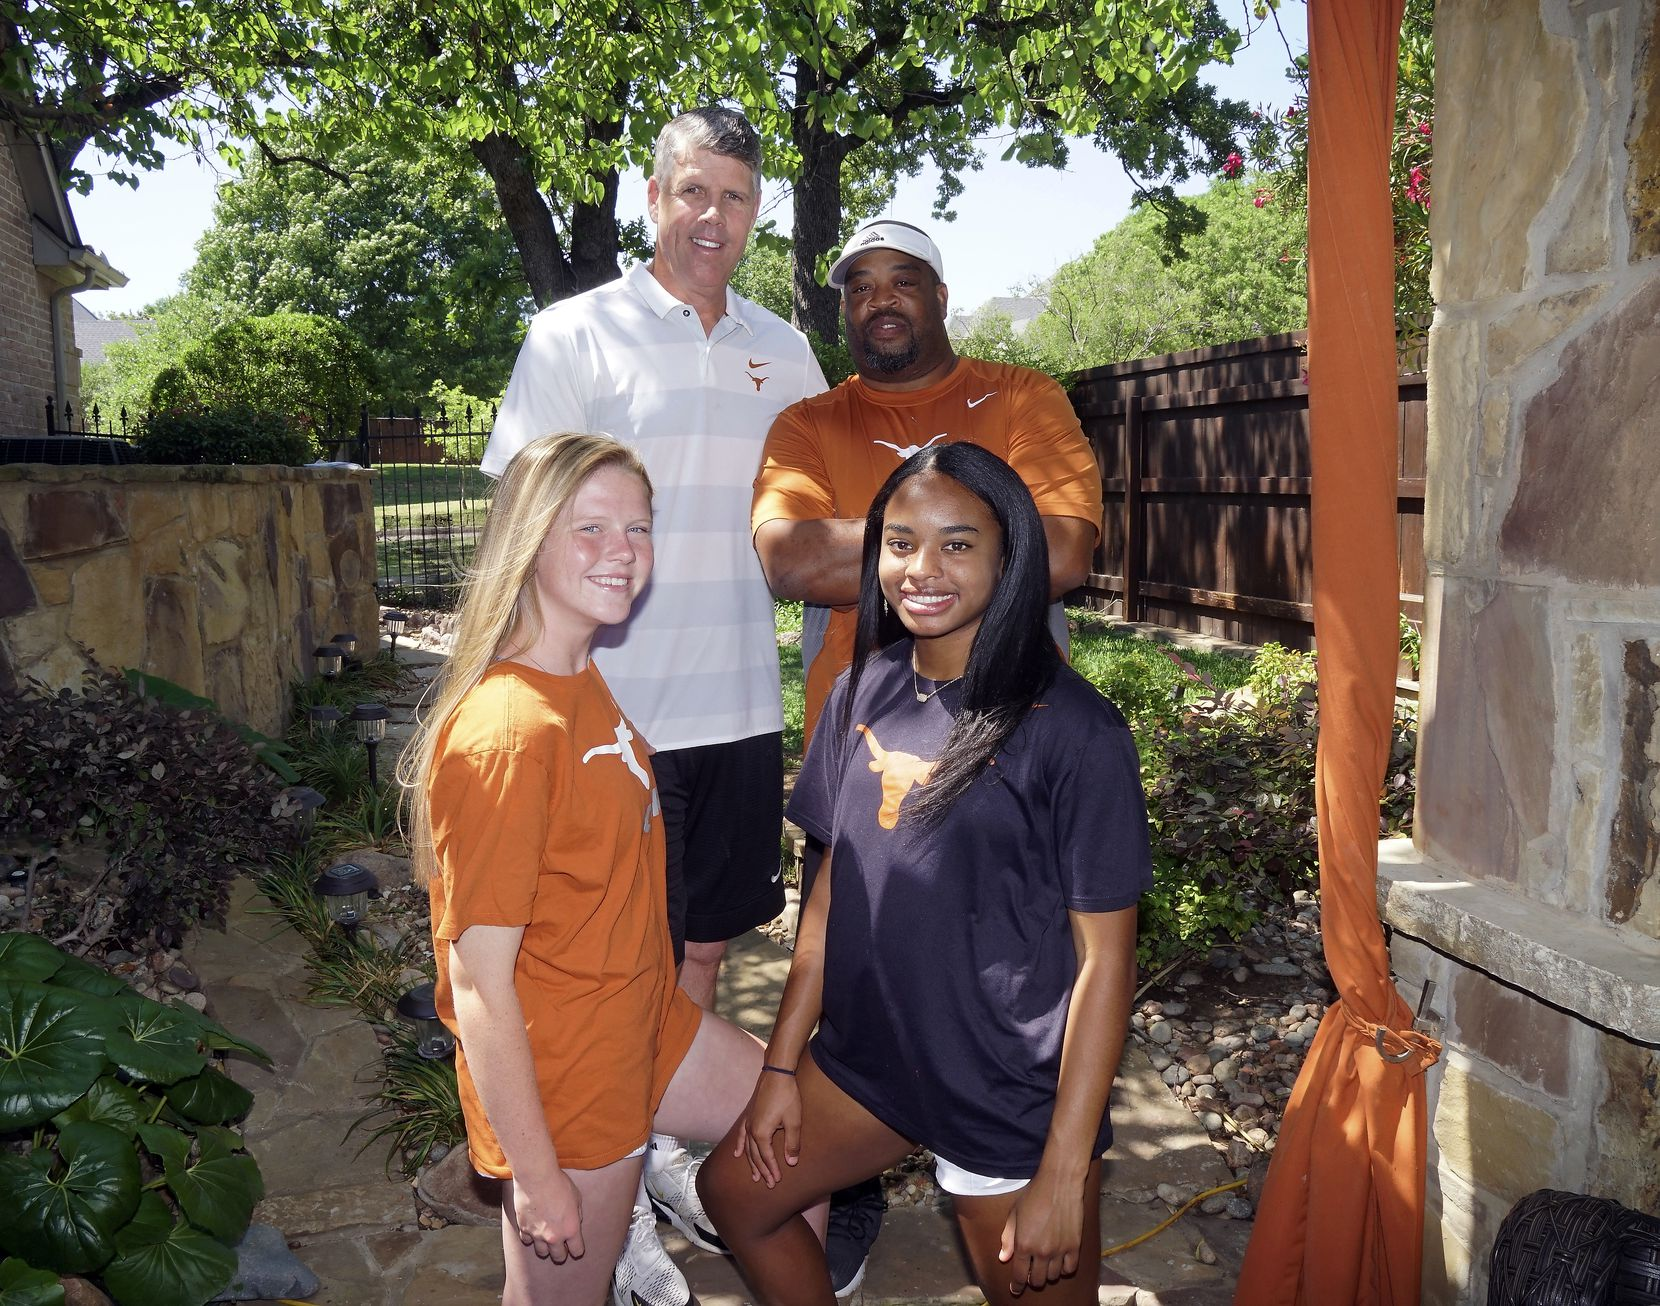 """(front, from left) Alexis """"Lexi"""" Missimo (17), and Trinity Byars (17) and (back from left) Derek Missimo and Charles Byars, at the Missimo home in Southlake, Texas on Monday, May 4, 2020."""